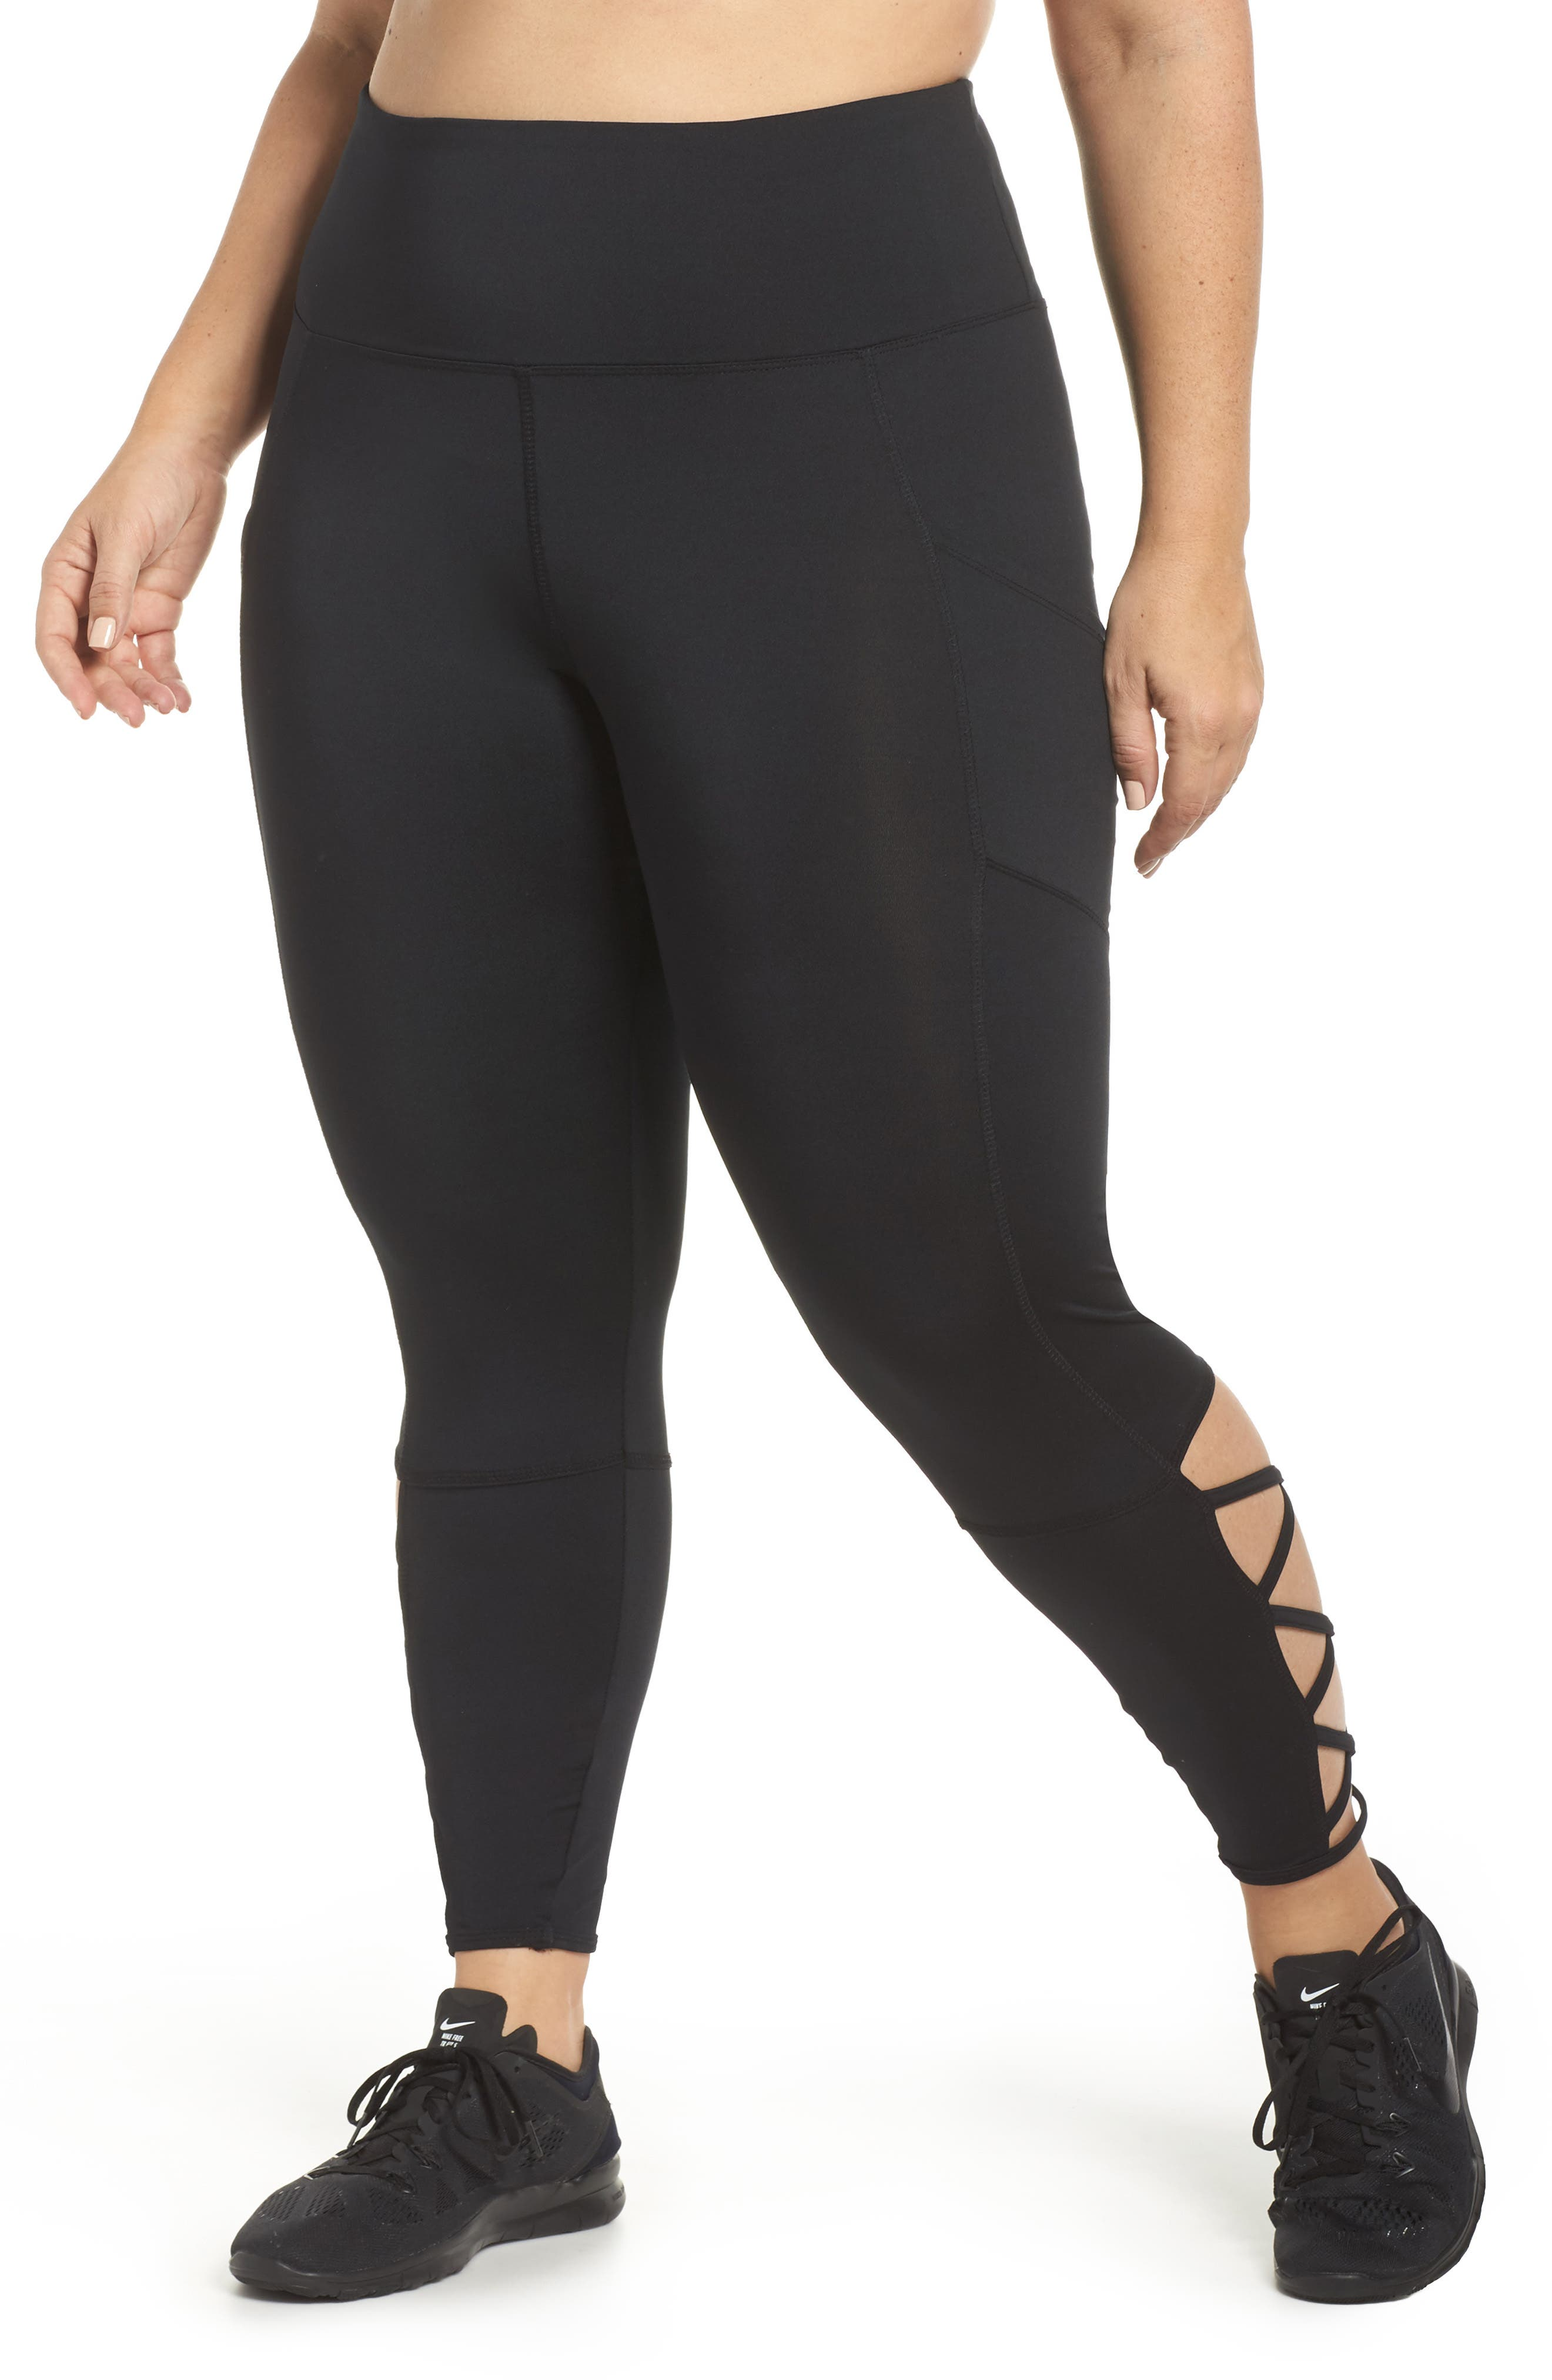 Lux Ankle Leggings,                         Main,                         color, 001